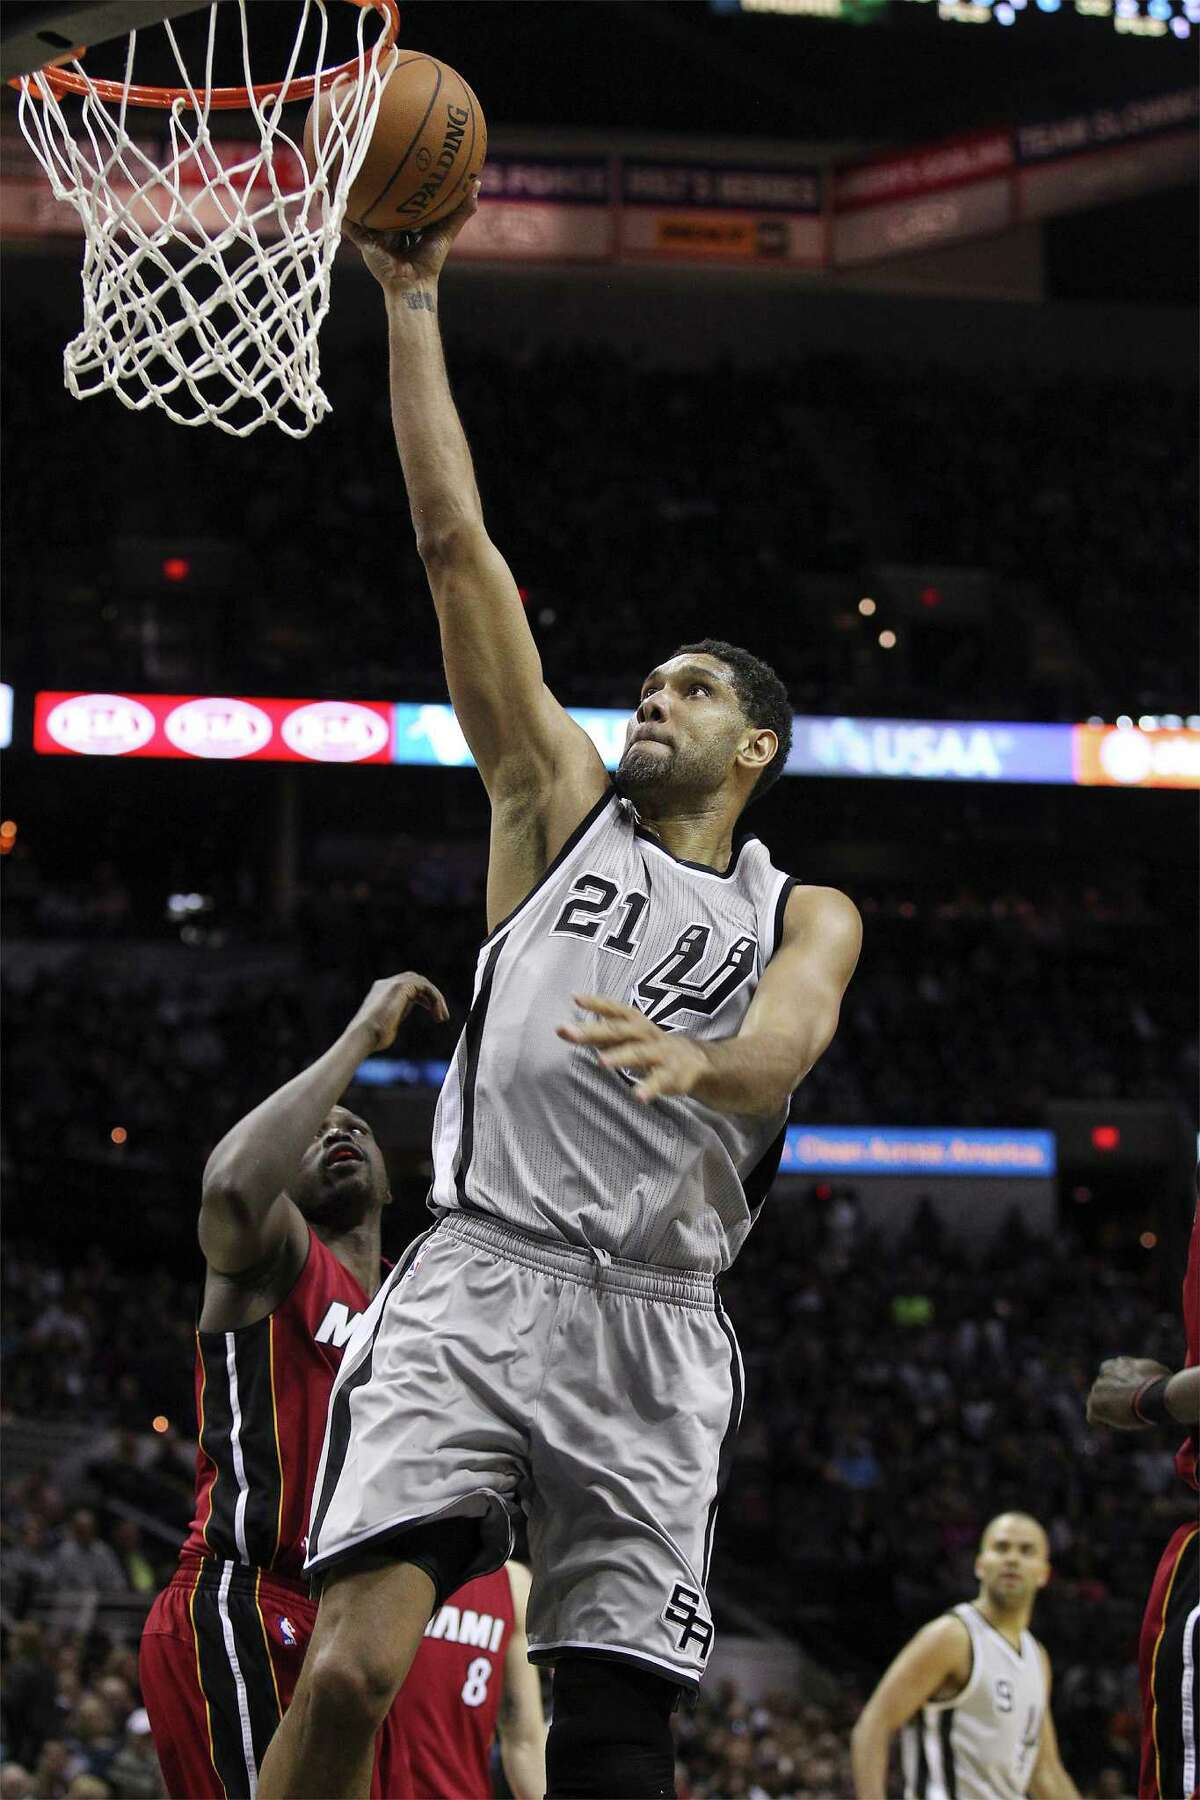 Spurs' Tim Duncan (21) gets called for traveling as he attempts a dunk against the Miami Heat at the AT&T Center on Friday, Feb. 6, 2015. (Kin Man Hui/San Antonio Express-News)